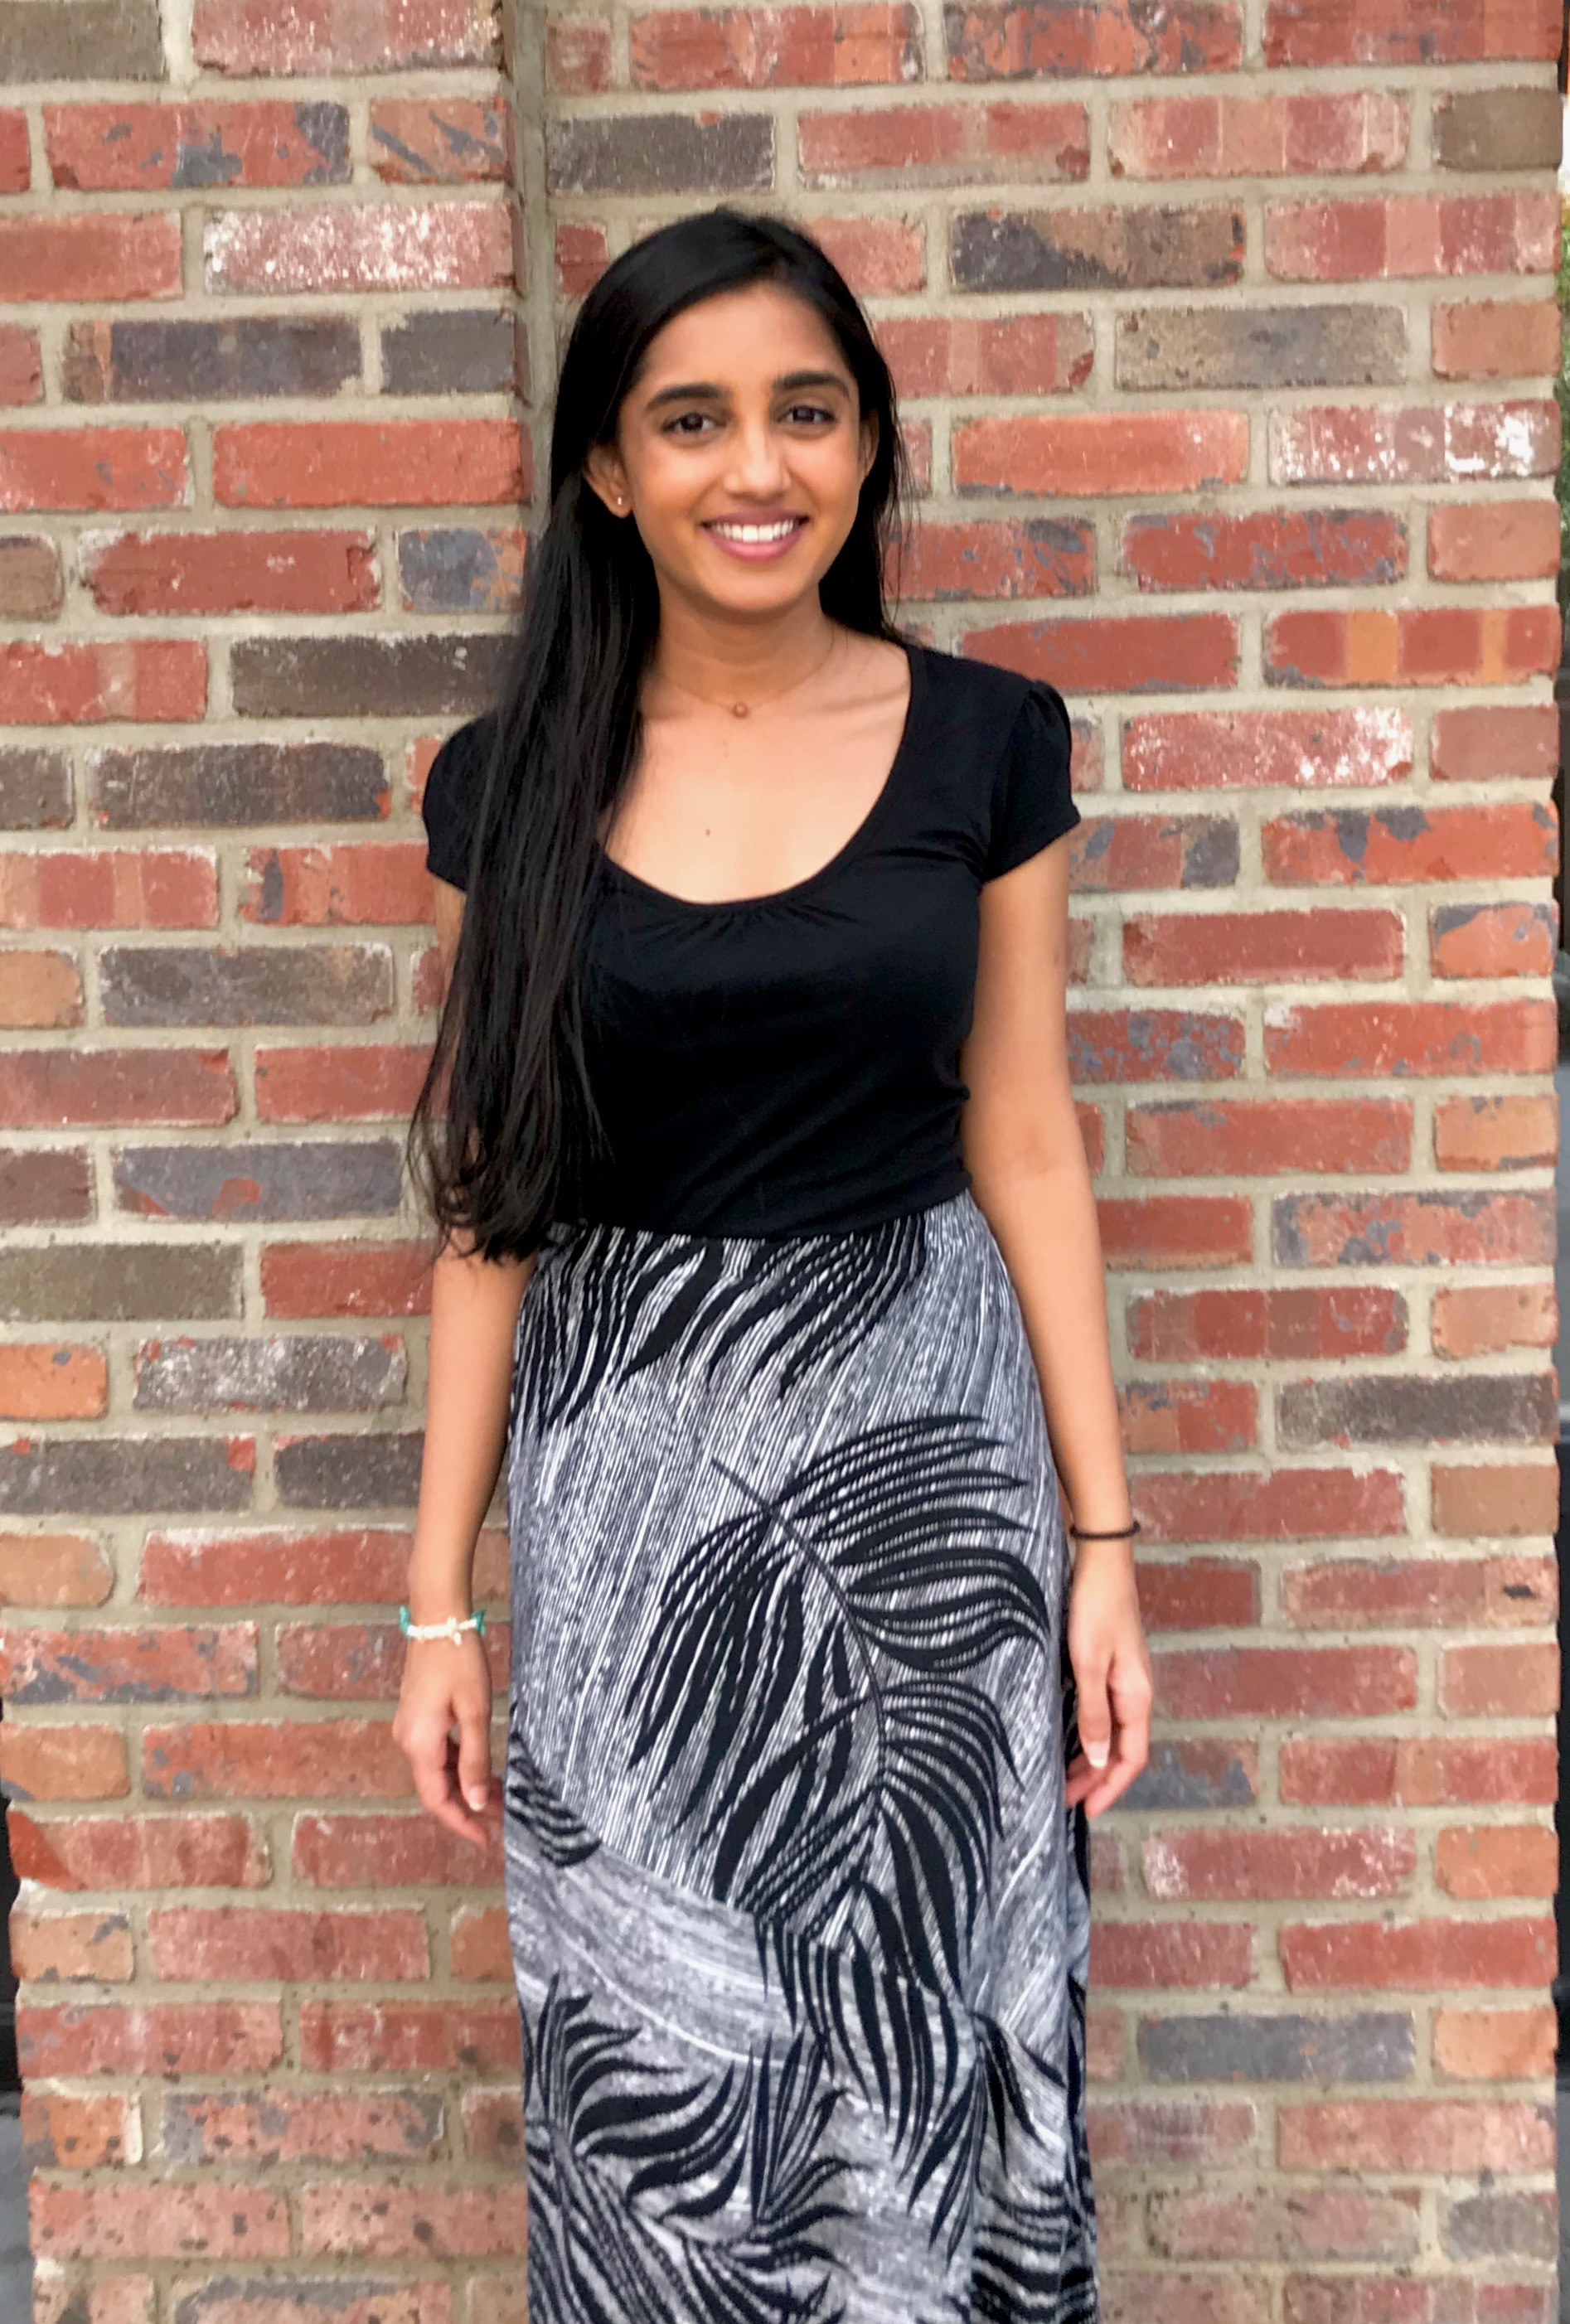 Rachel Patel, MSPAS, PA-C - Department of SurgeryRachel Patel is a General Surgery Physician Assistant employed in New York City. Working with world renowned innovating surgeons, she has flourished, becoming a successful Physician Assistant. Rachel is a graduate of an accelerated BS/MS program at New York Institute of Technology, a Master's in Physician Assistant Studies with Distinction. Rachel serves as member of the American Academy of Physician Assistants on a national level as well as New York State Society of Physician Assistants on the state level.She is the recipient of Graduate Award Scholarship at New York Institute of Technology and graduated PA school with honors. With roots in New Jersey and a large professional network through the country, Rachel has served on the student interview panel for physician assistant program for two years, has mentored pre-PAs, PA-S and continues to teach PA students and med students at their General Surgery rotation.